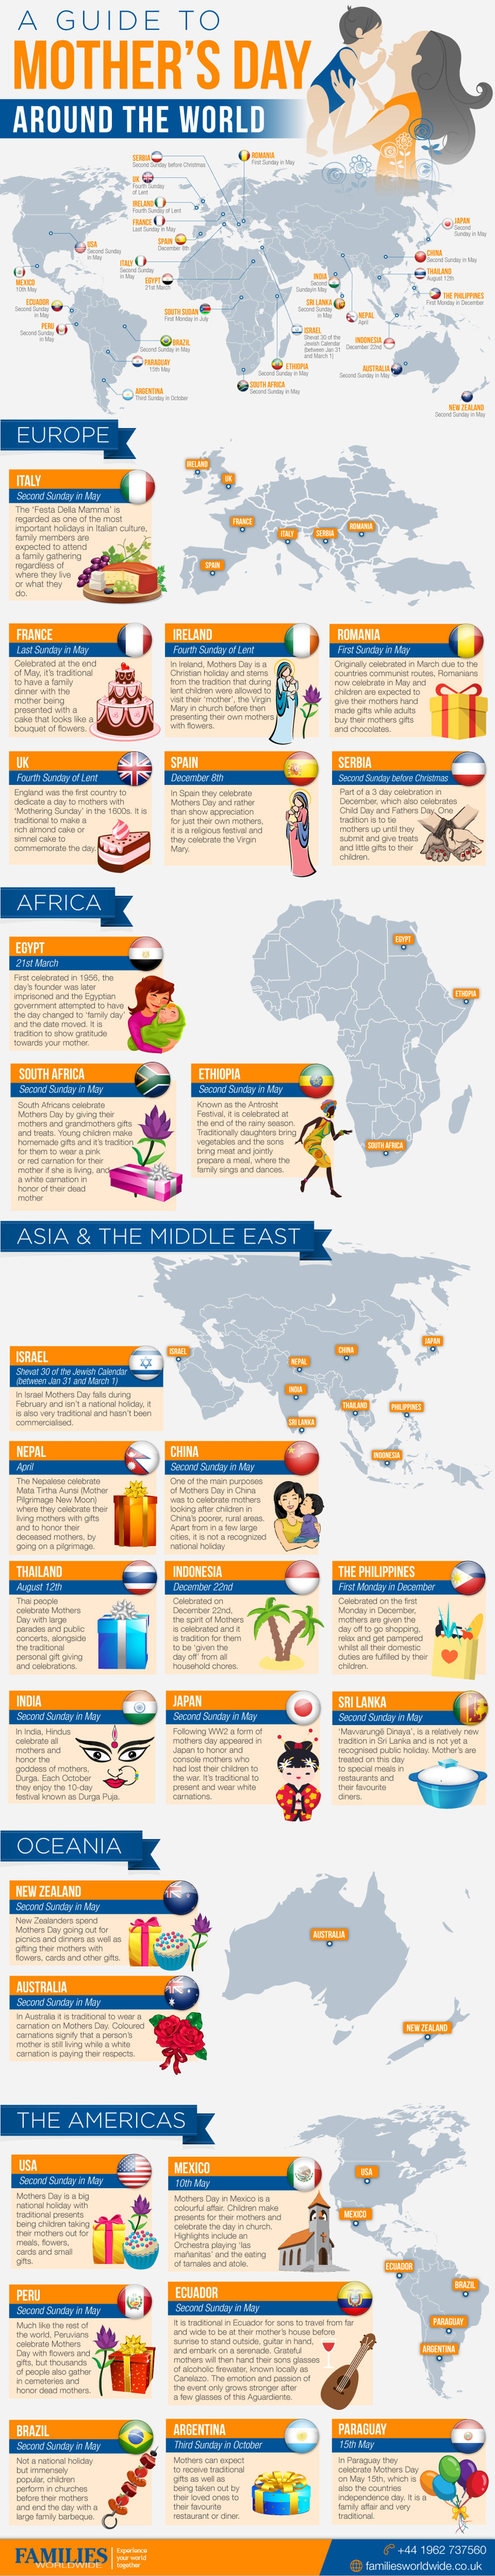 Mother's Day celebration Dates Around the World Infographic